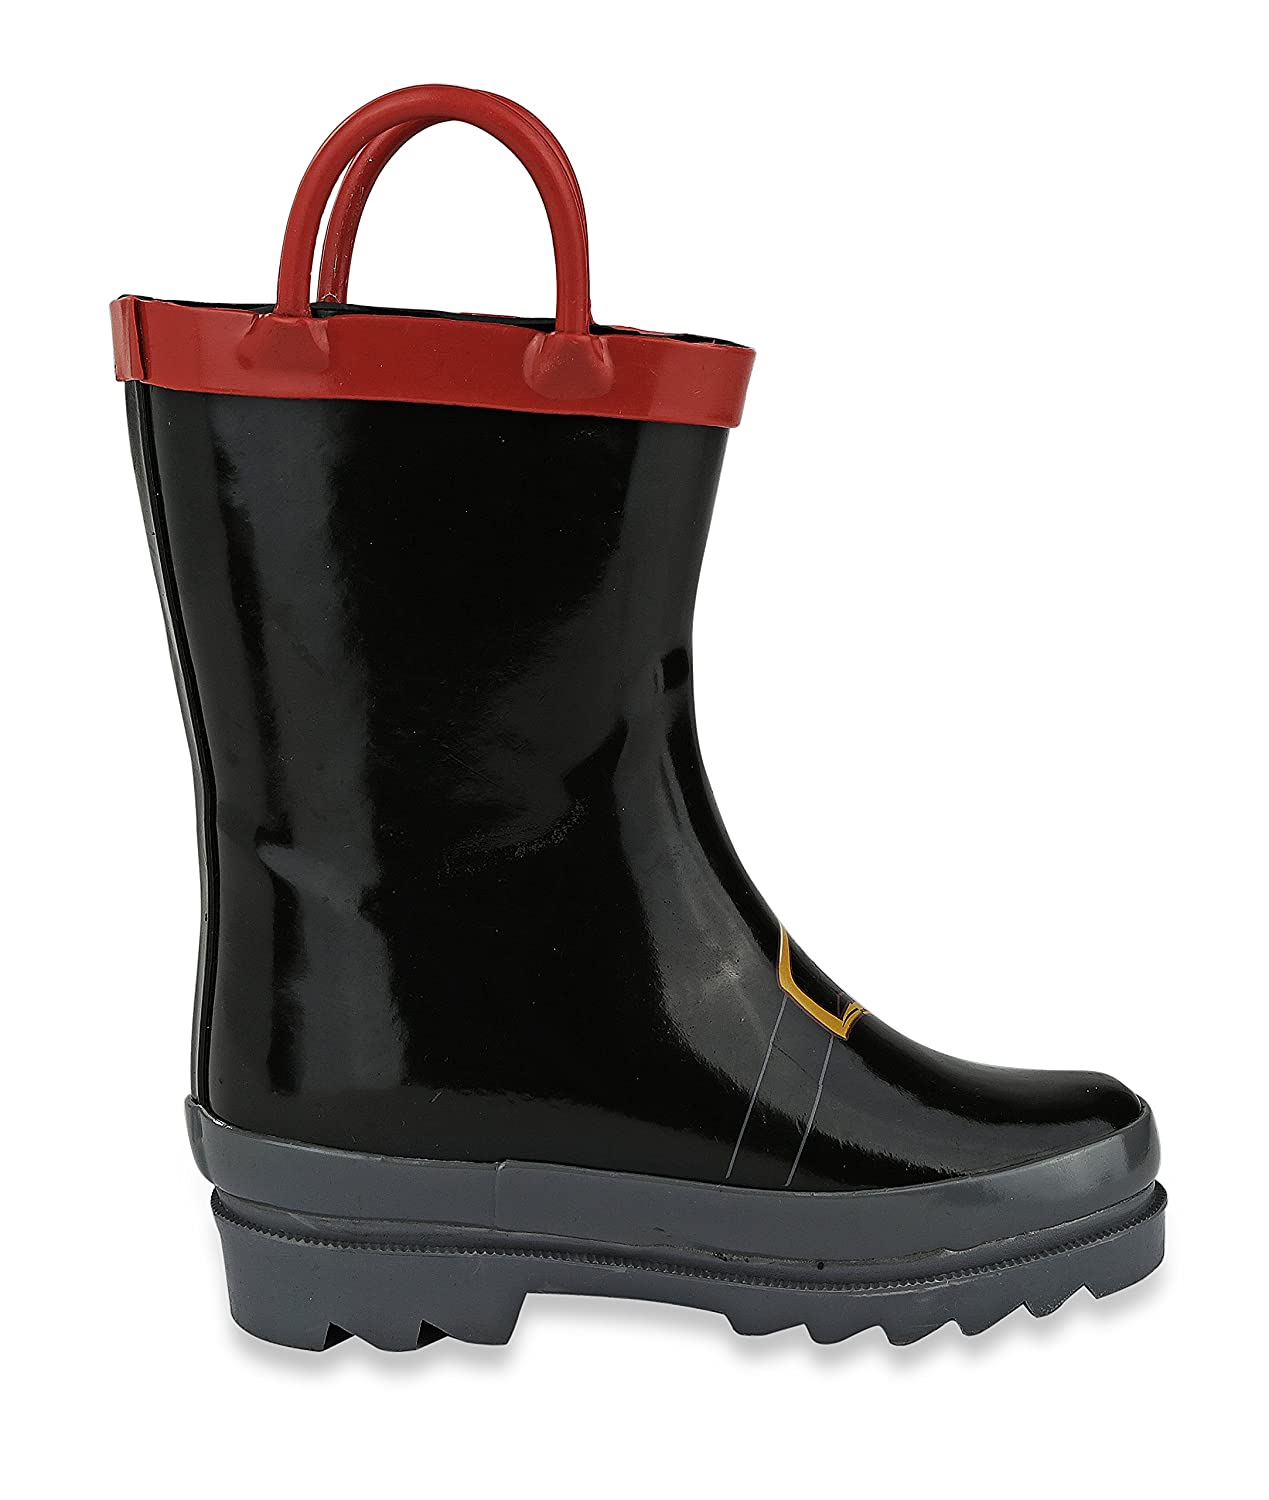 Boys Pirate Printed Waterproof Easy-On Rubber Rain Boots Toddler /& Little Kids